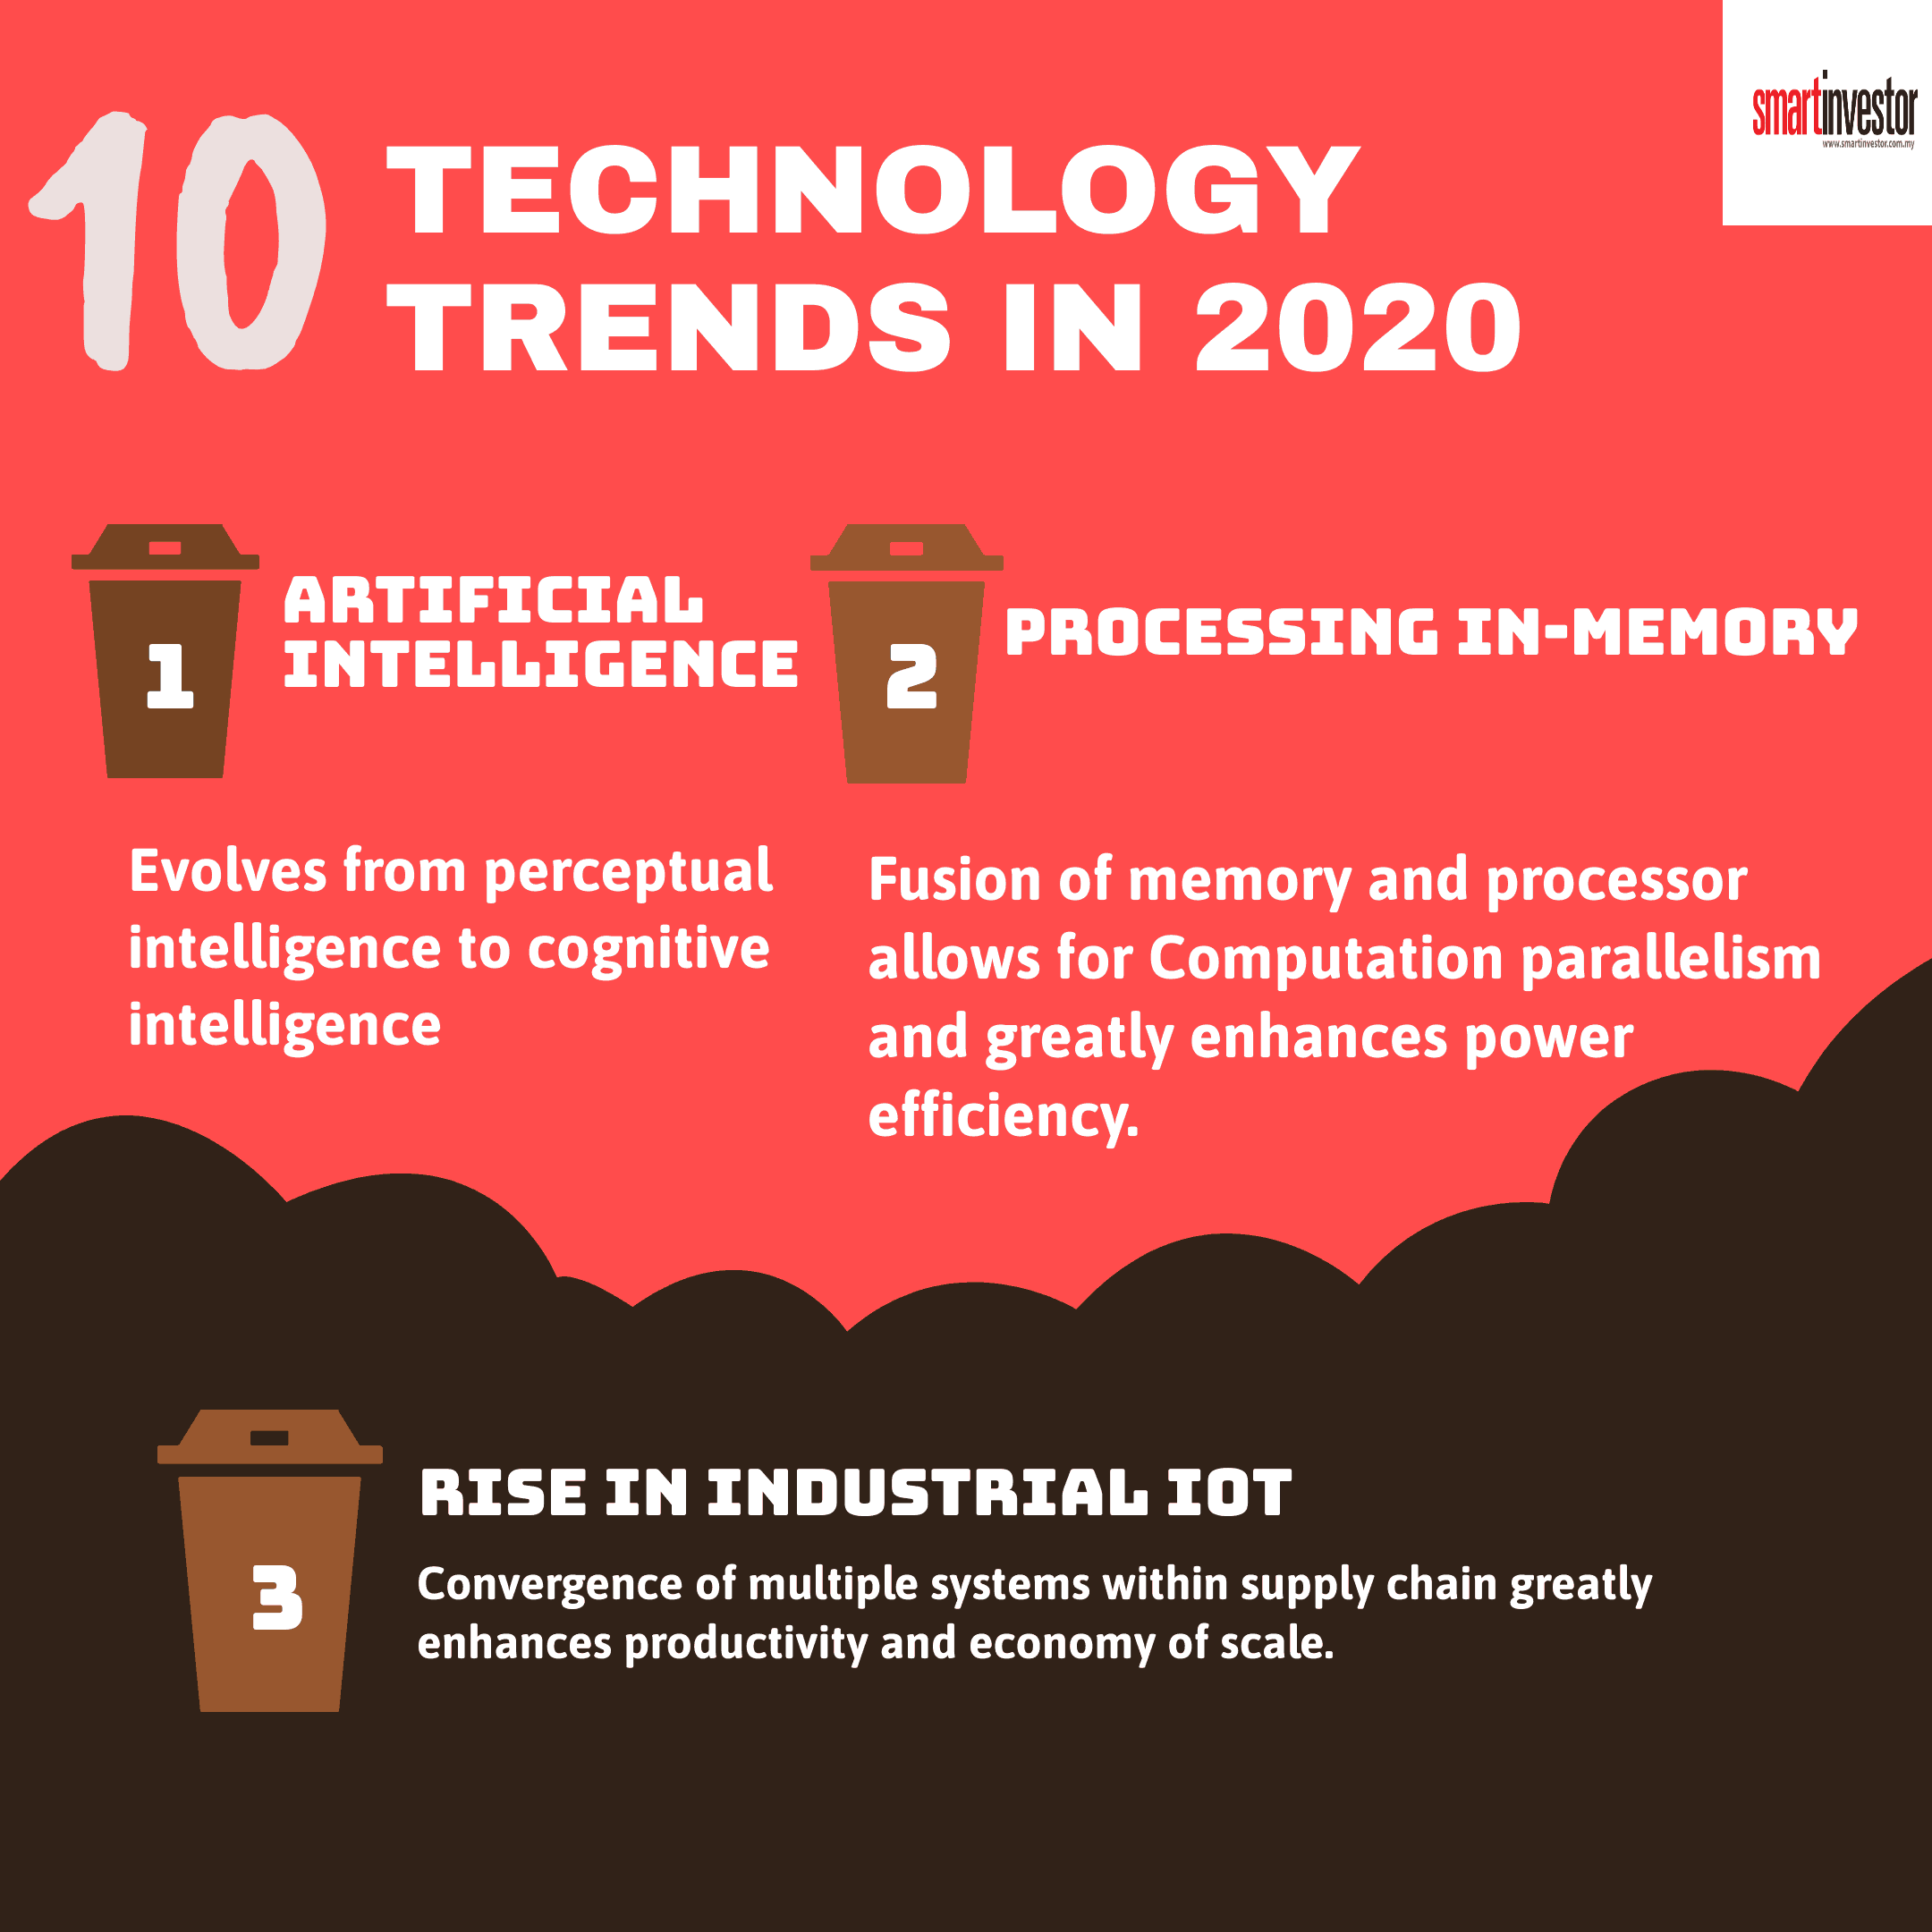 Top 10 technology trends in 2020 by Alibaba